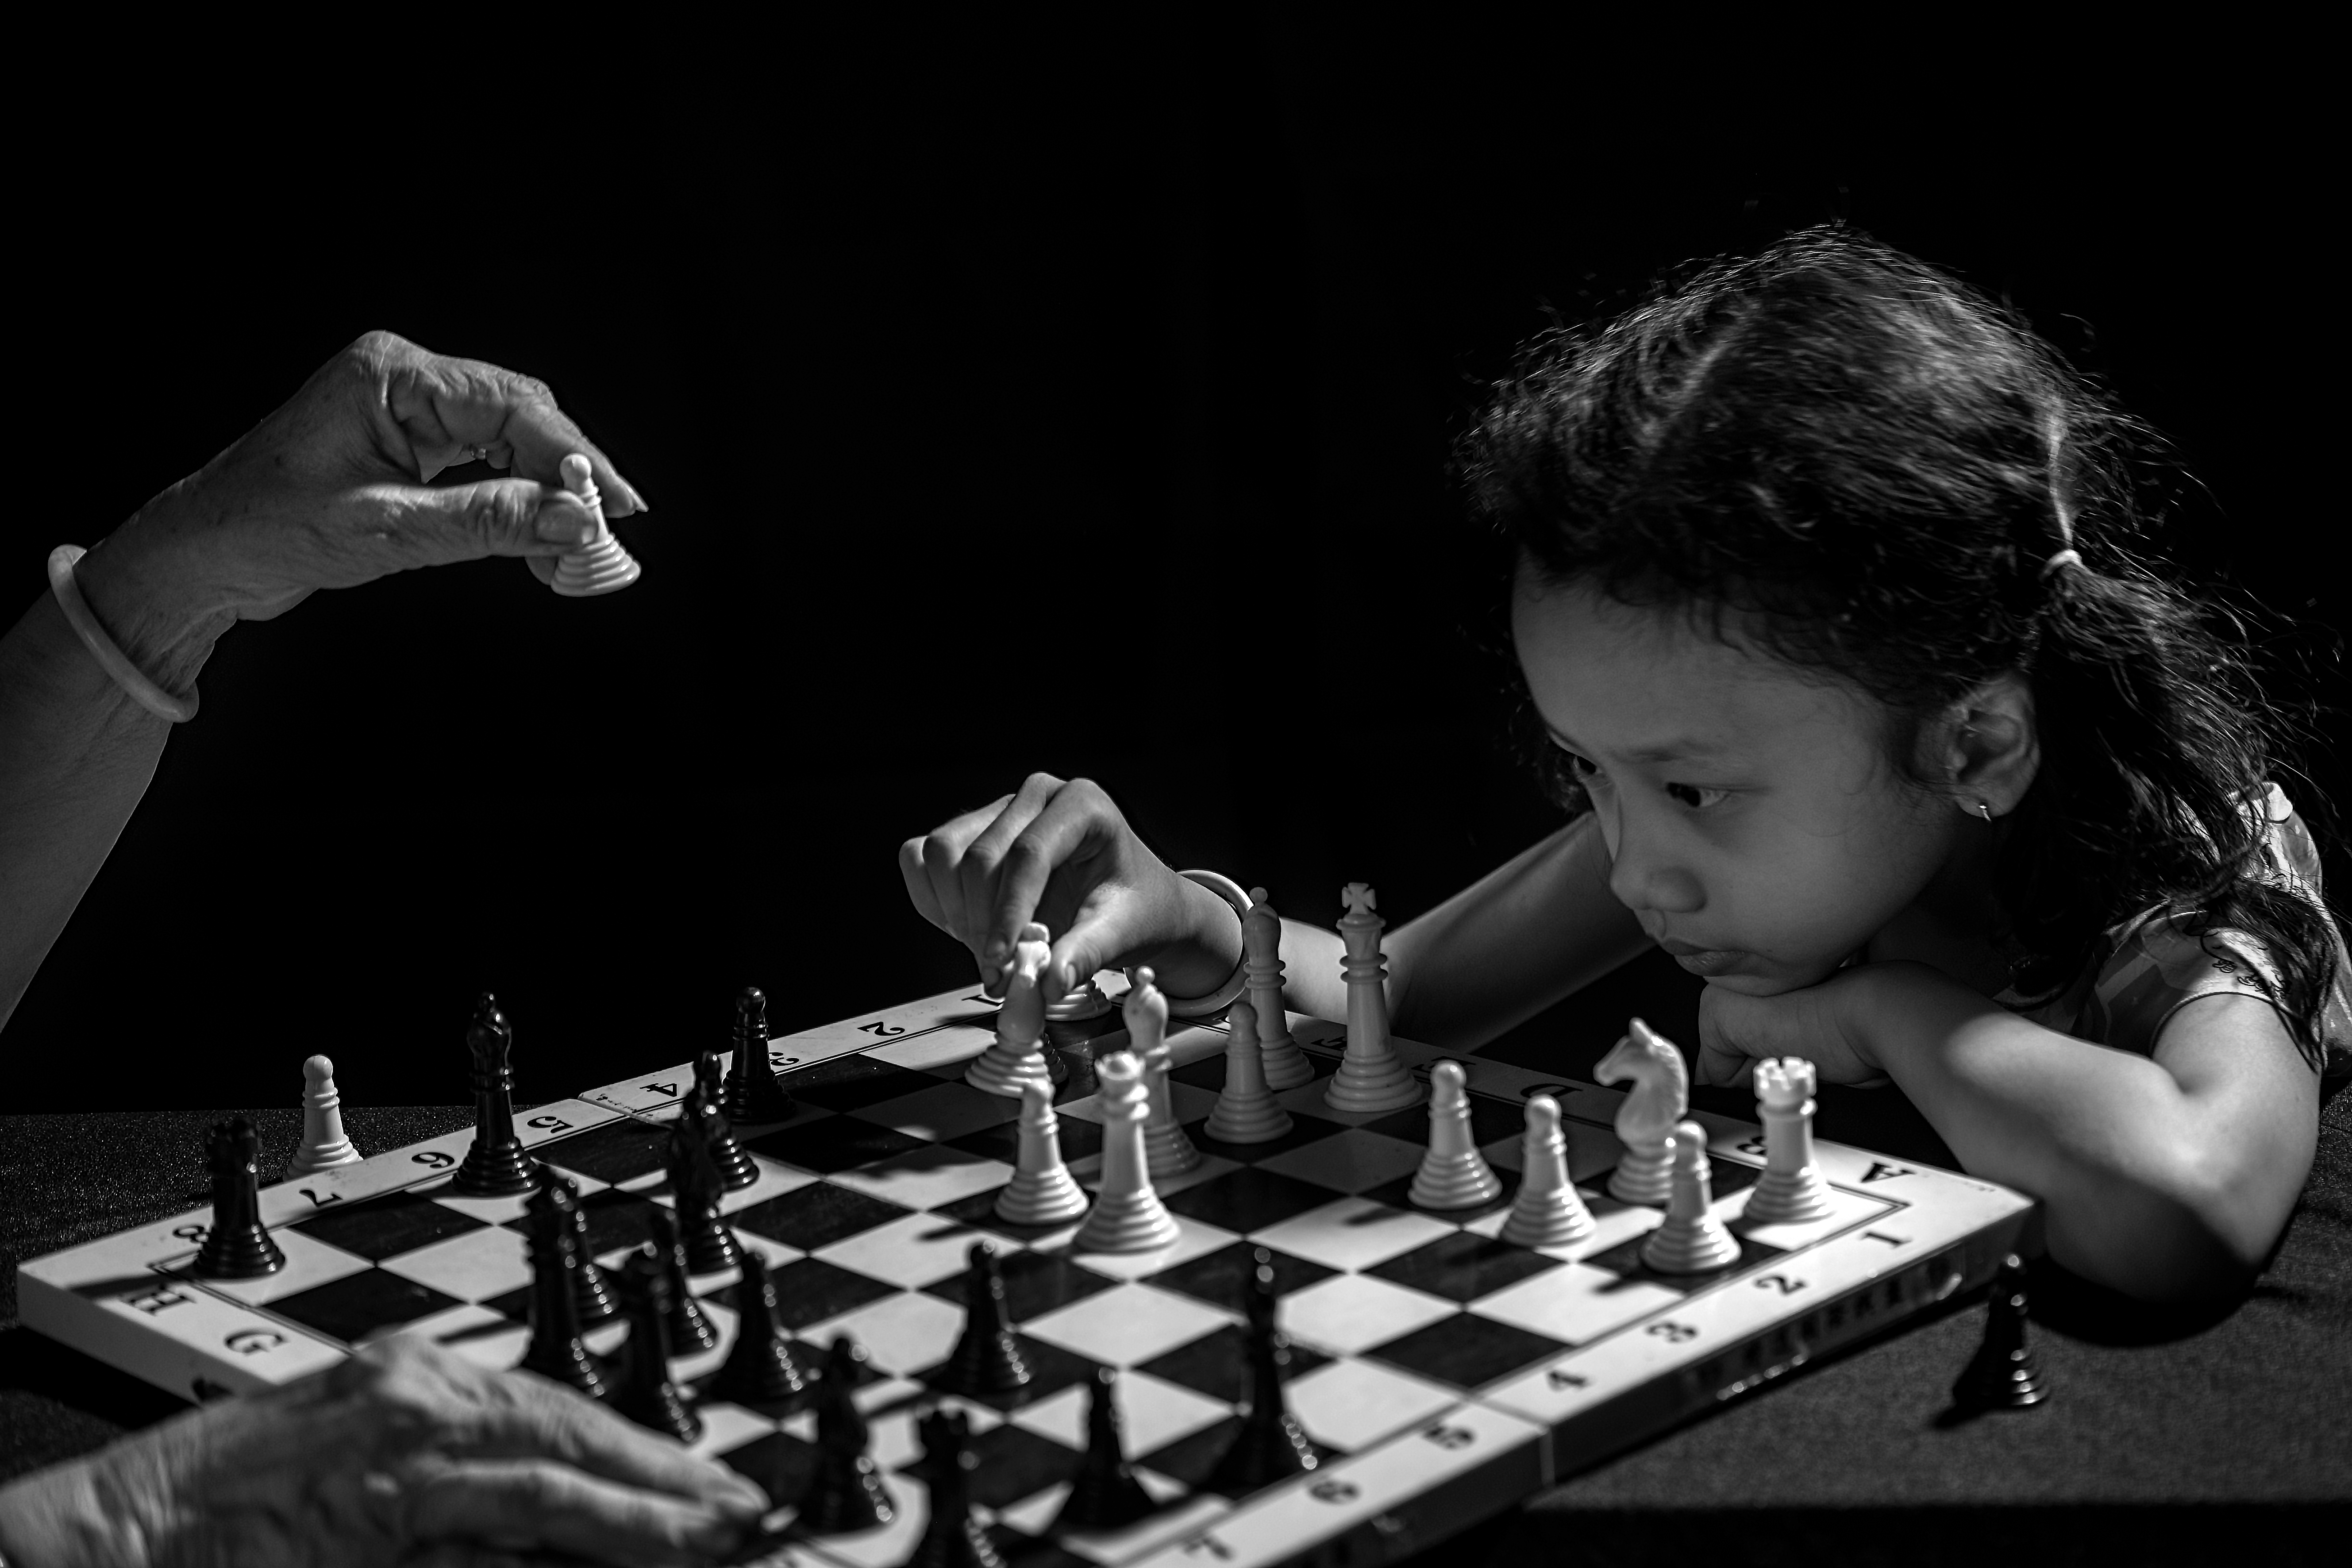 Black and white photo of a young girl puzzling out her next move in a game of chess with her grandmother.